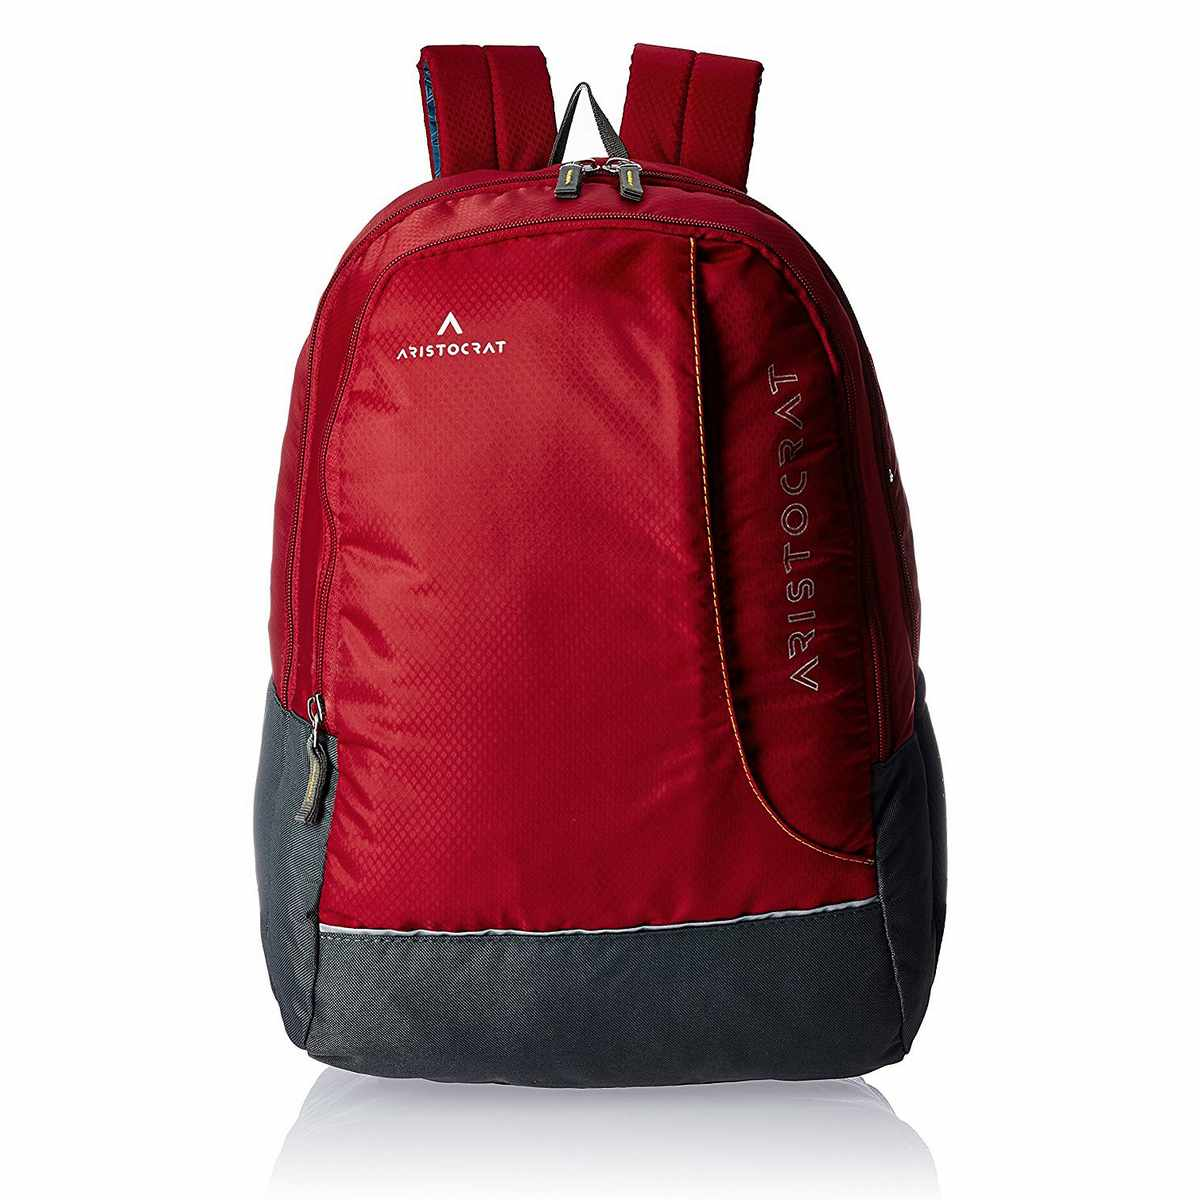 3312c358a1ae Aristocrat Unisex Red Laptop Backpack- Fenix Toulouse Handball